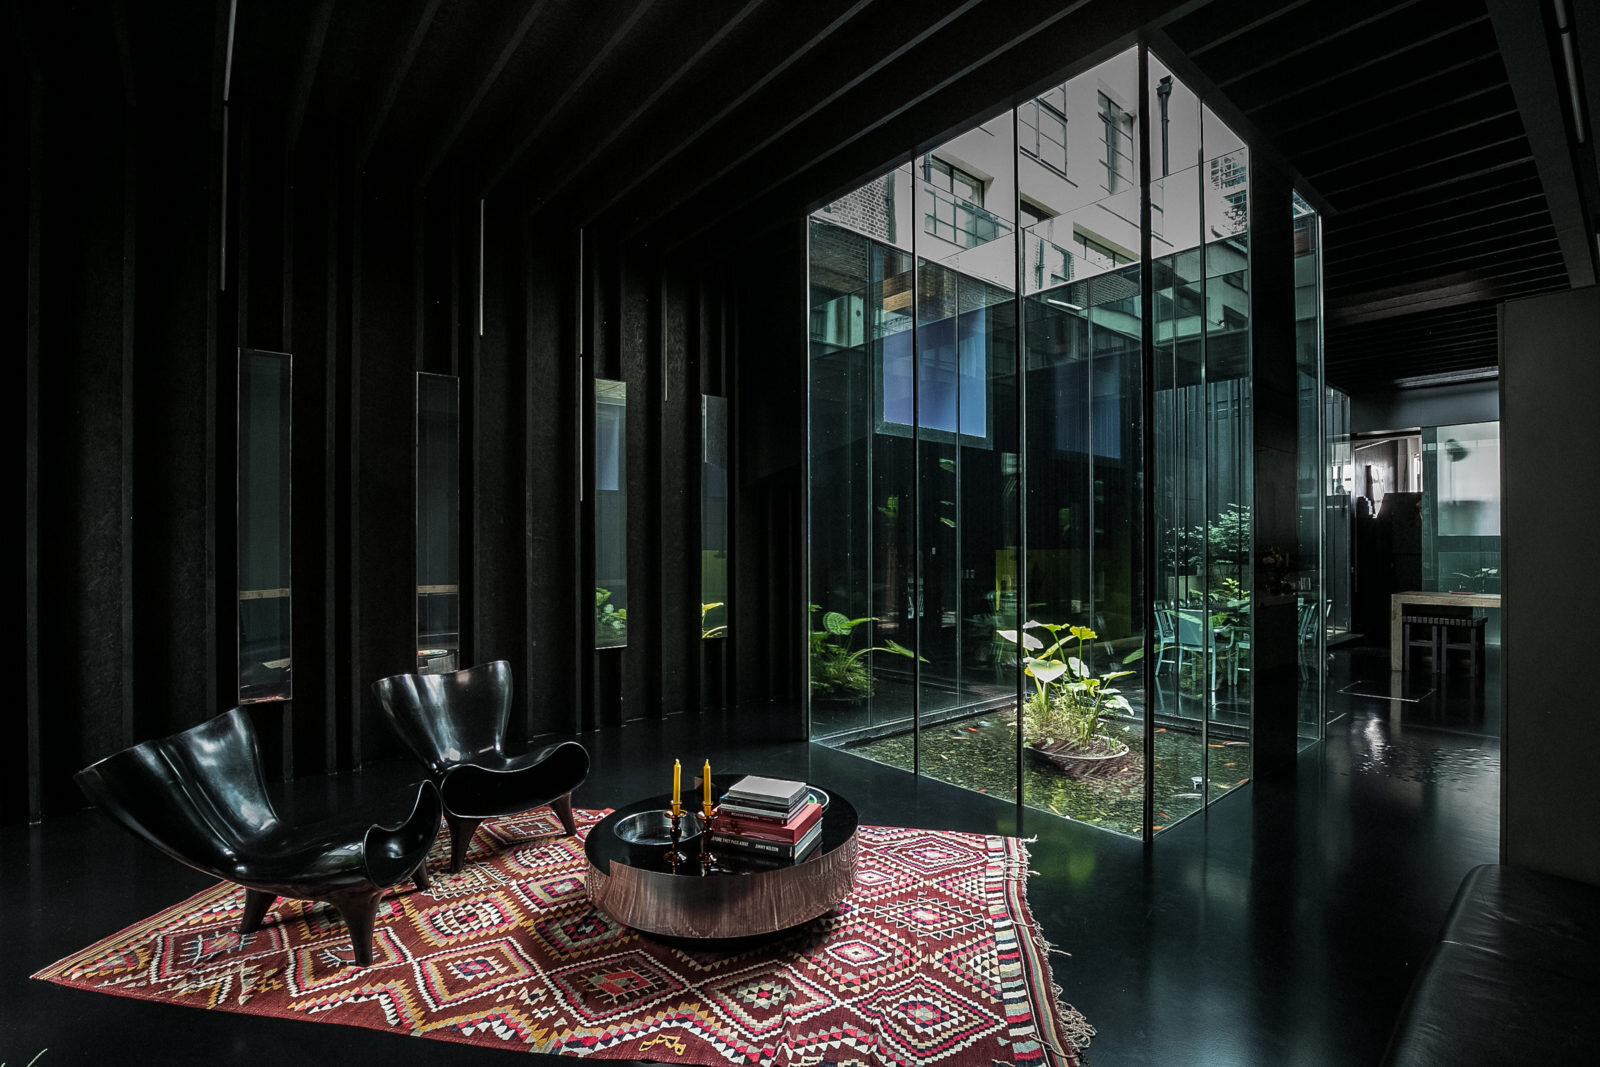 Lost House A Dramatic Architectural Home Designed By Sir David Adjaye The Nordroom